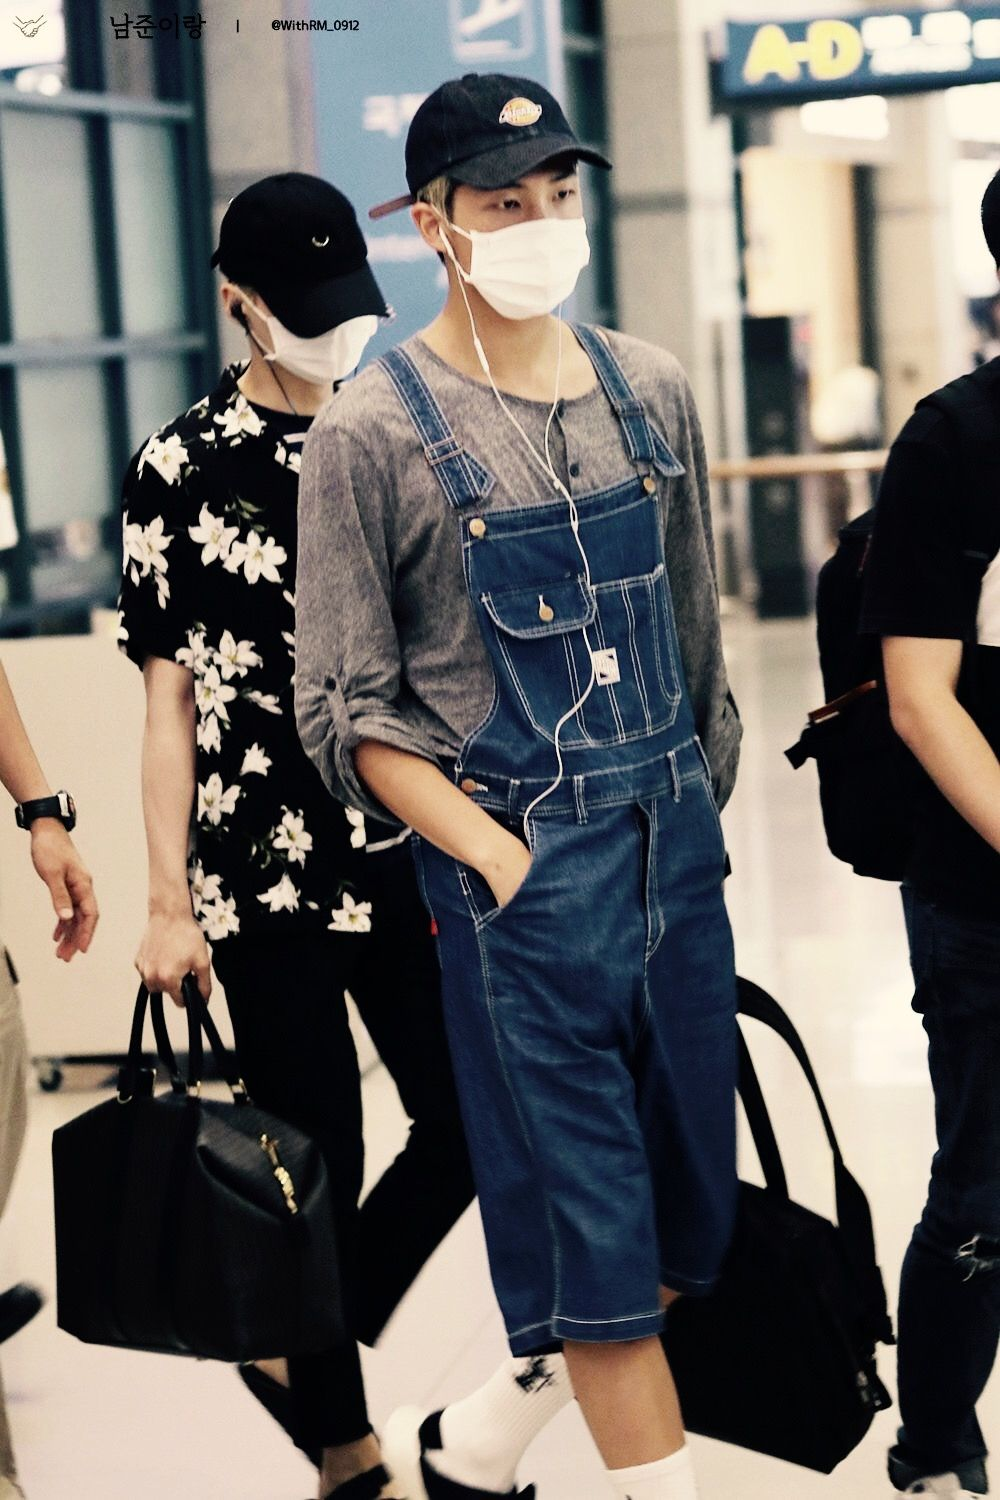 BTS || RAP MONSTER airport fashion - Literally he looks so cute in overalls ...